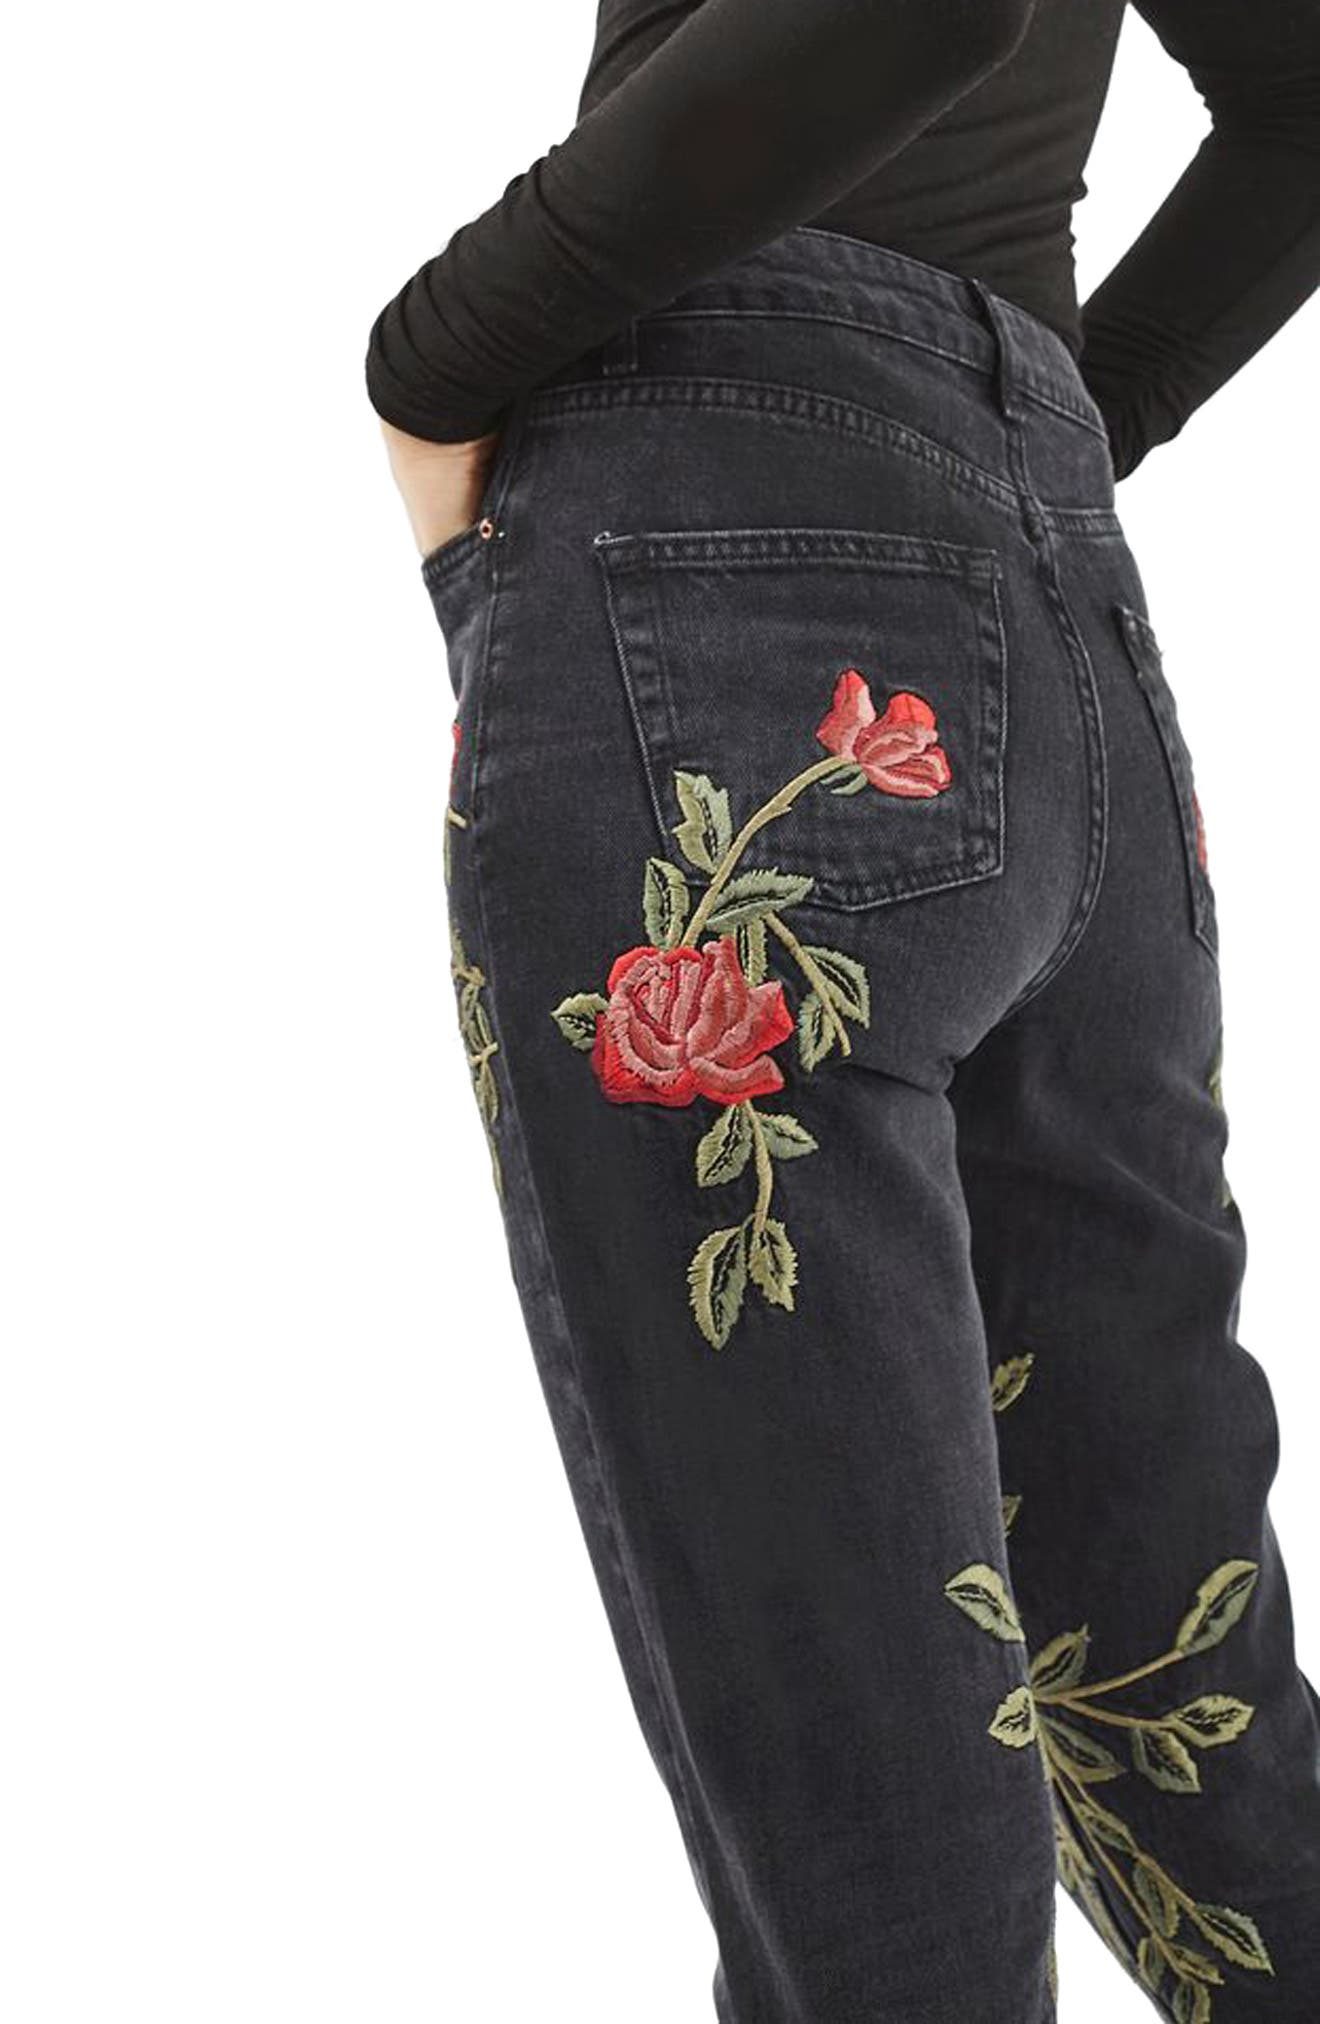 Mom Rose Embroidered Jeans,                             Alternate thumbnail 3, color,                             Washed Black Multi